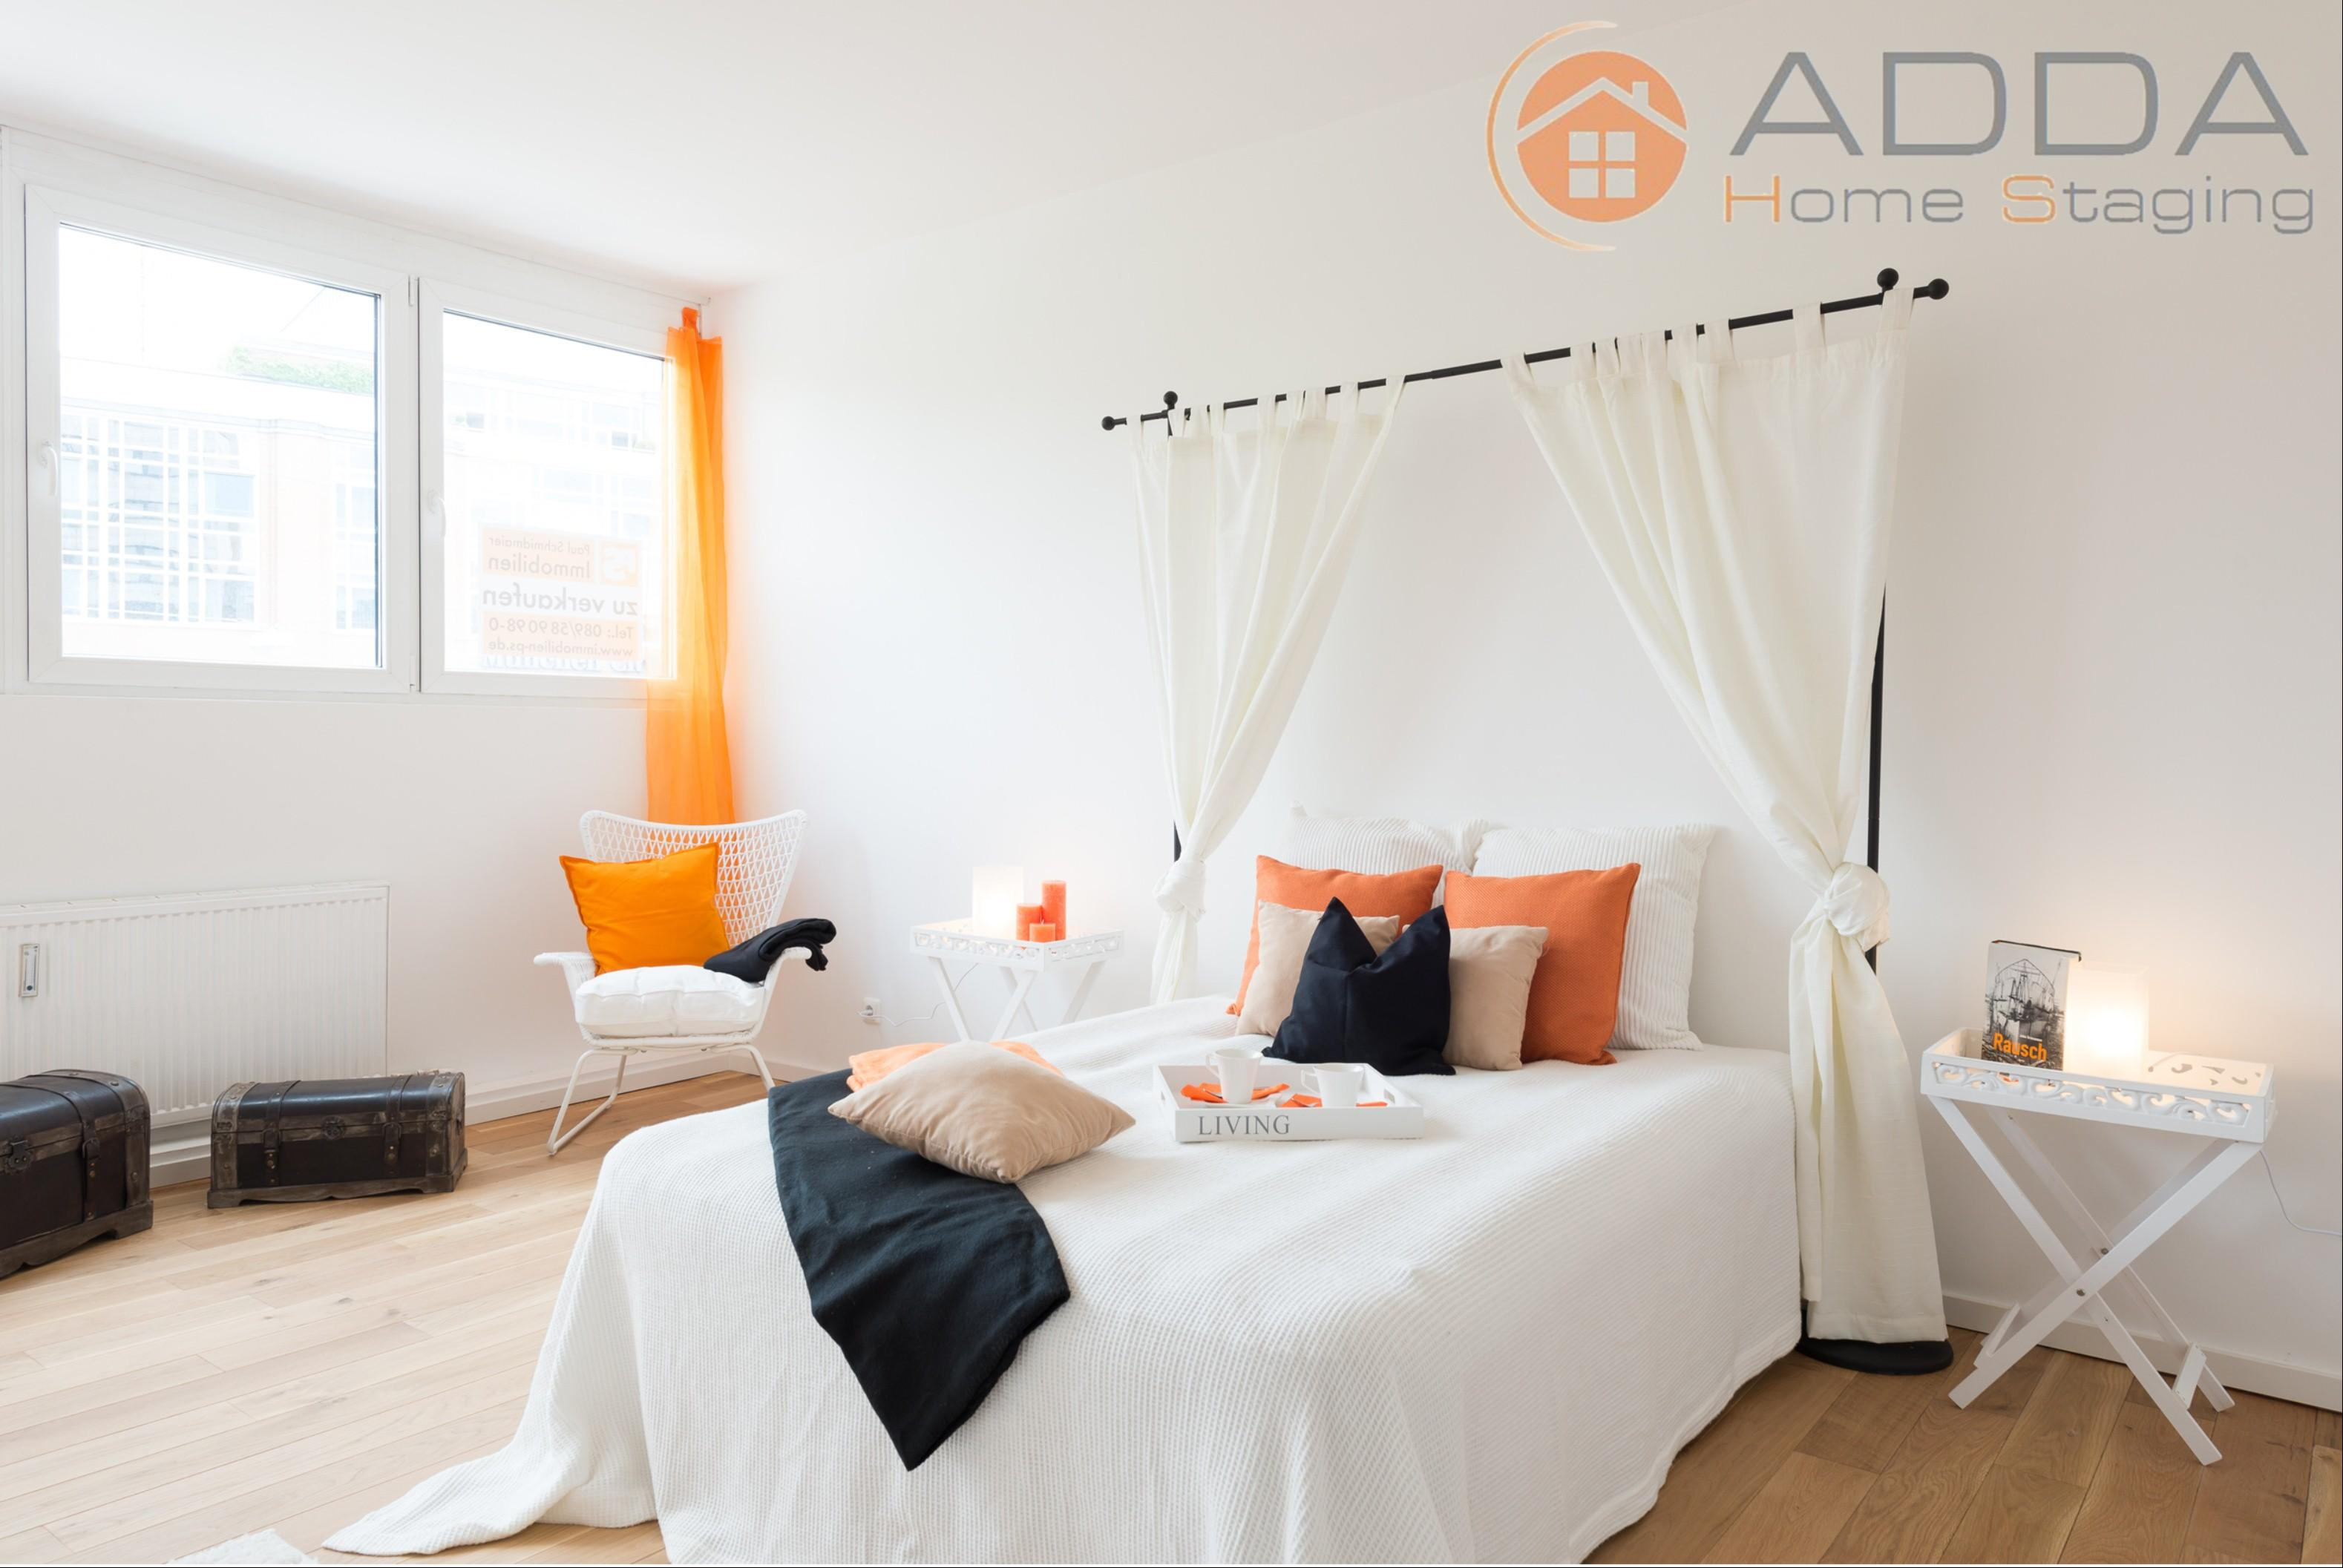 Schlafzimmer nach dem Home Staging #baldachin #tablett ©ADDA Home Staging